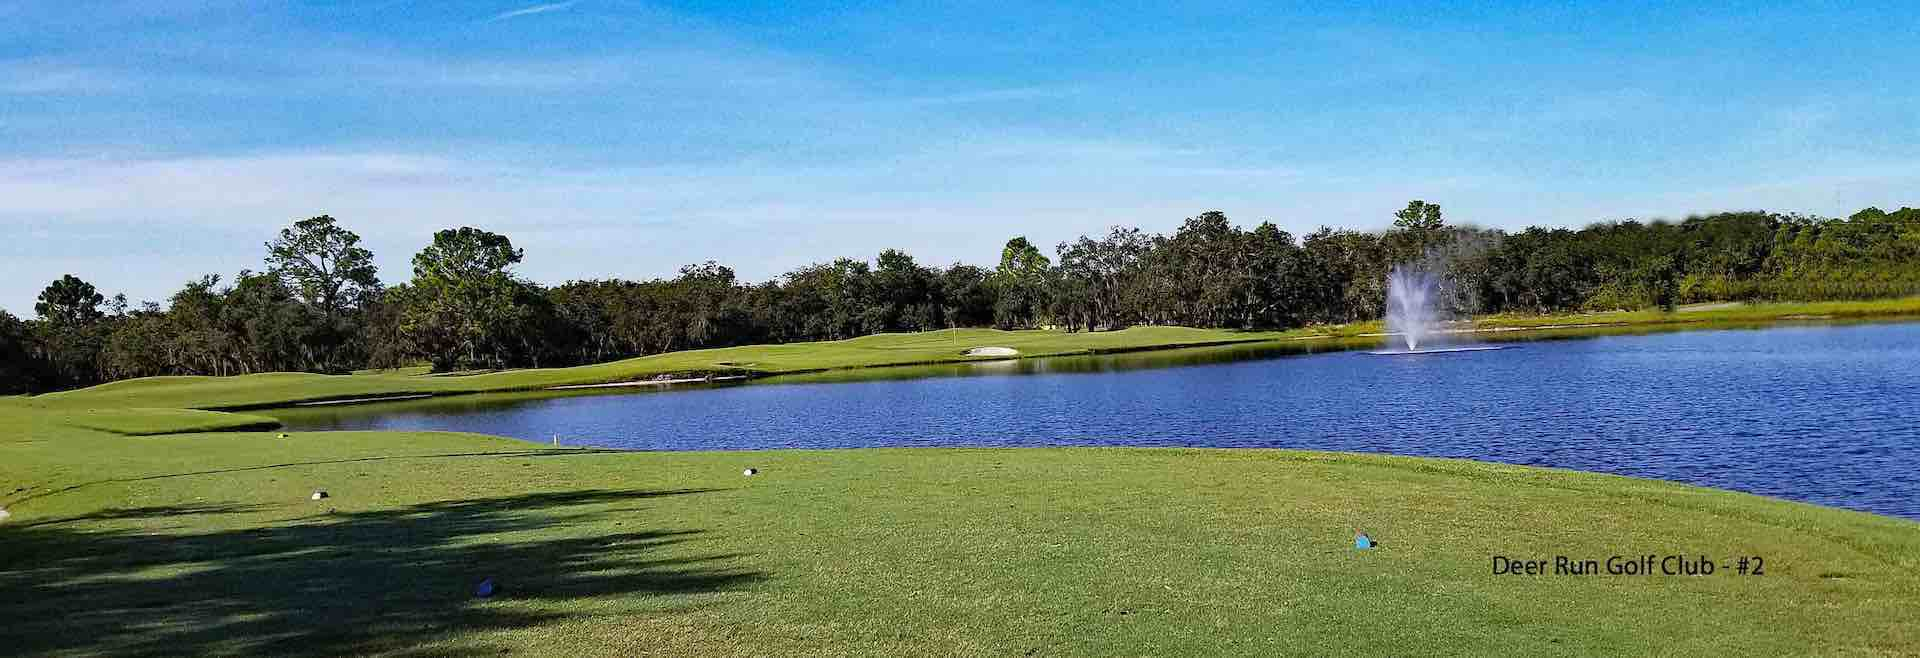 Sun 'N Lake Golf Club – Turtle Run